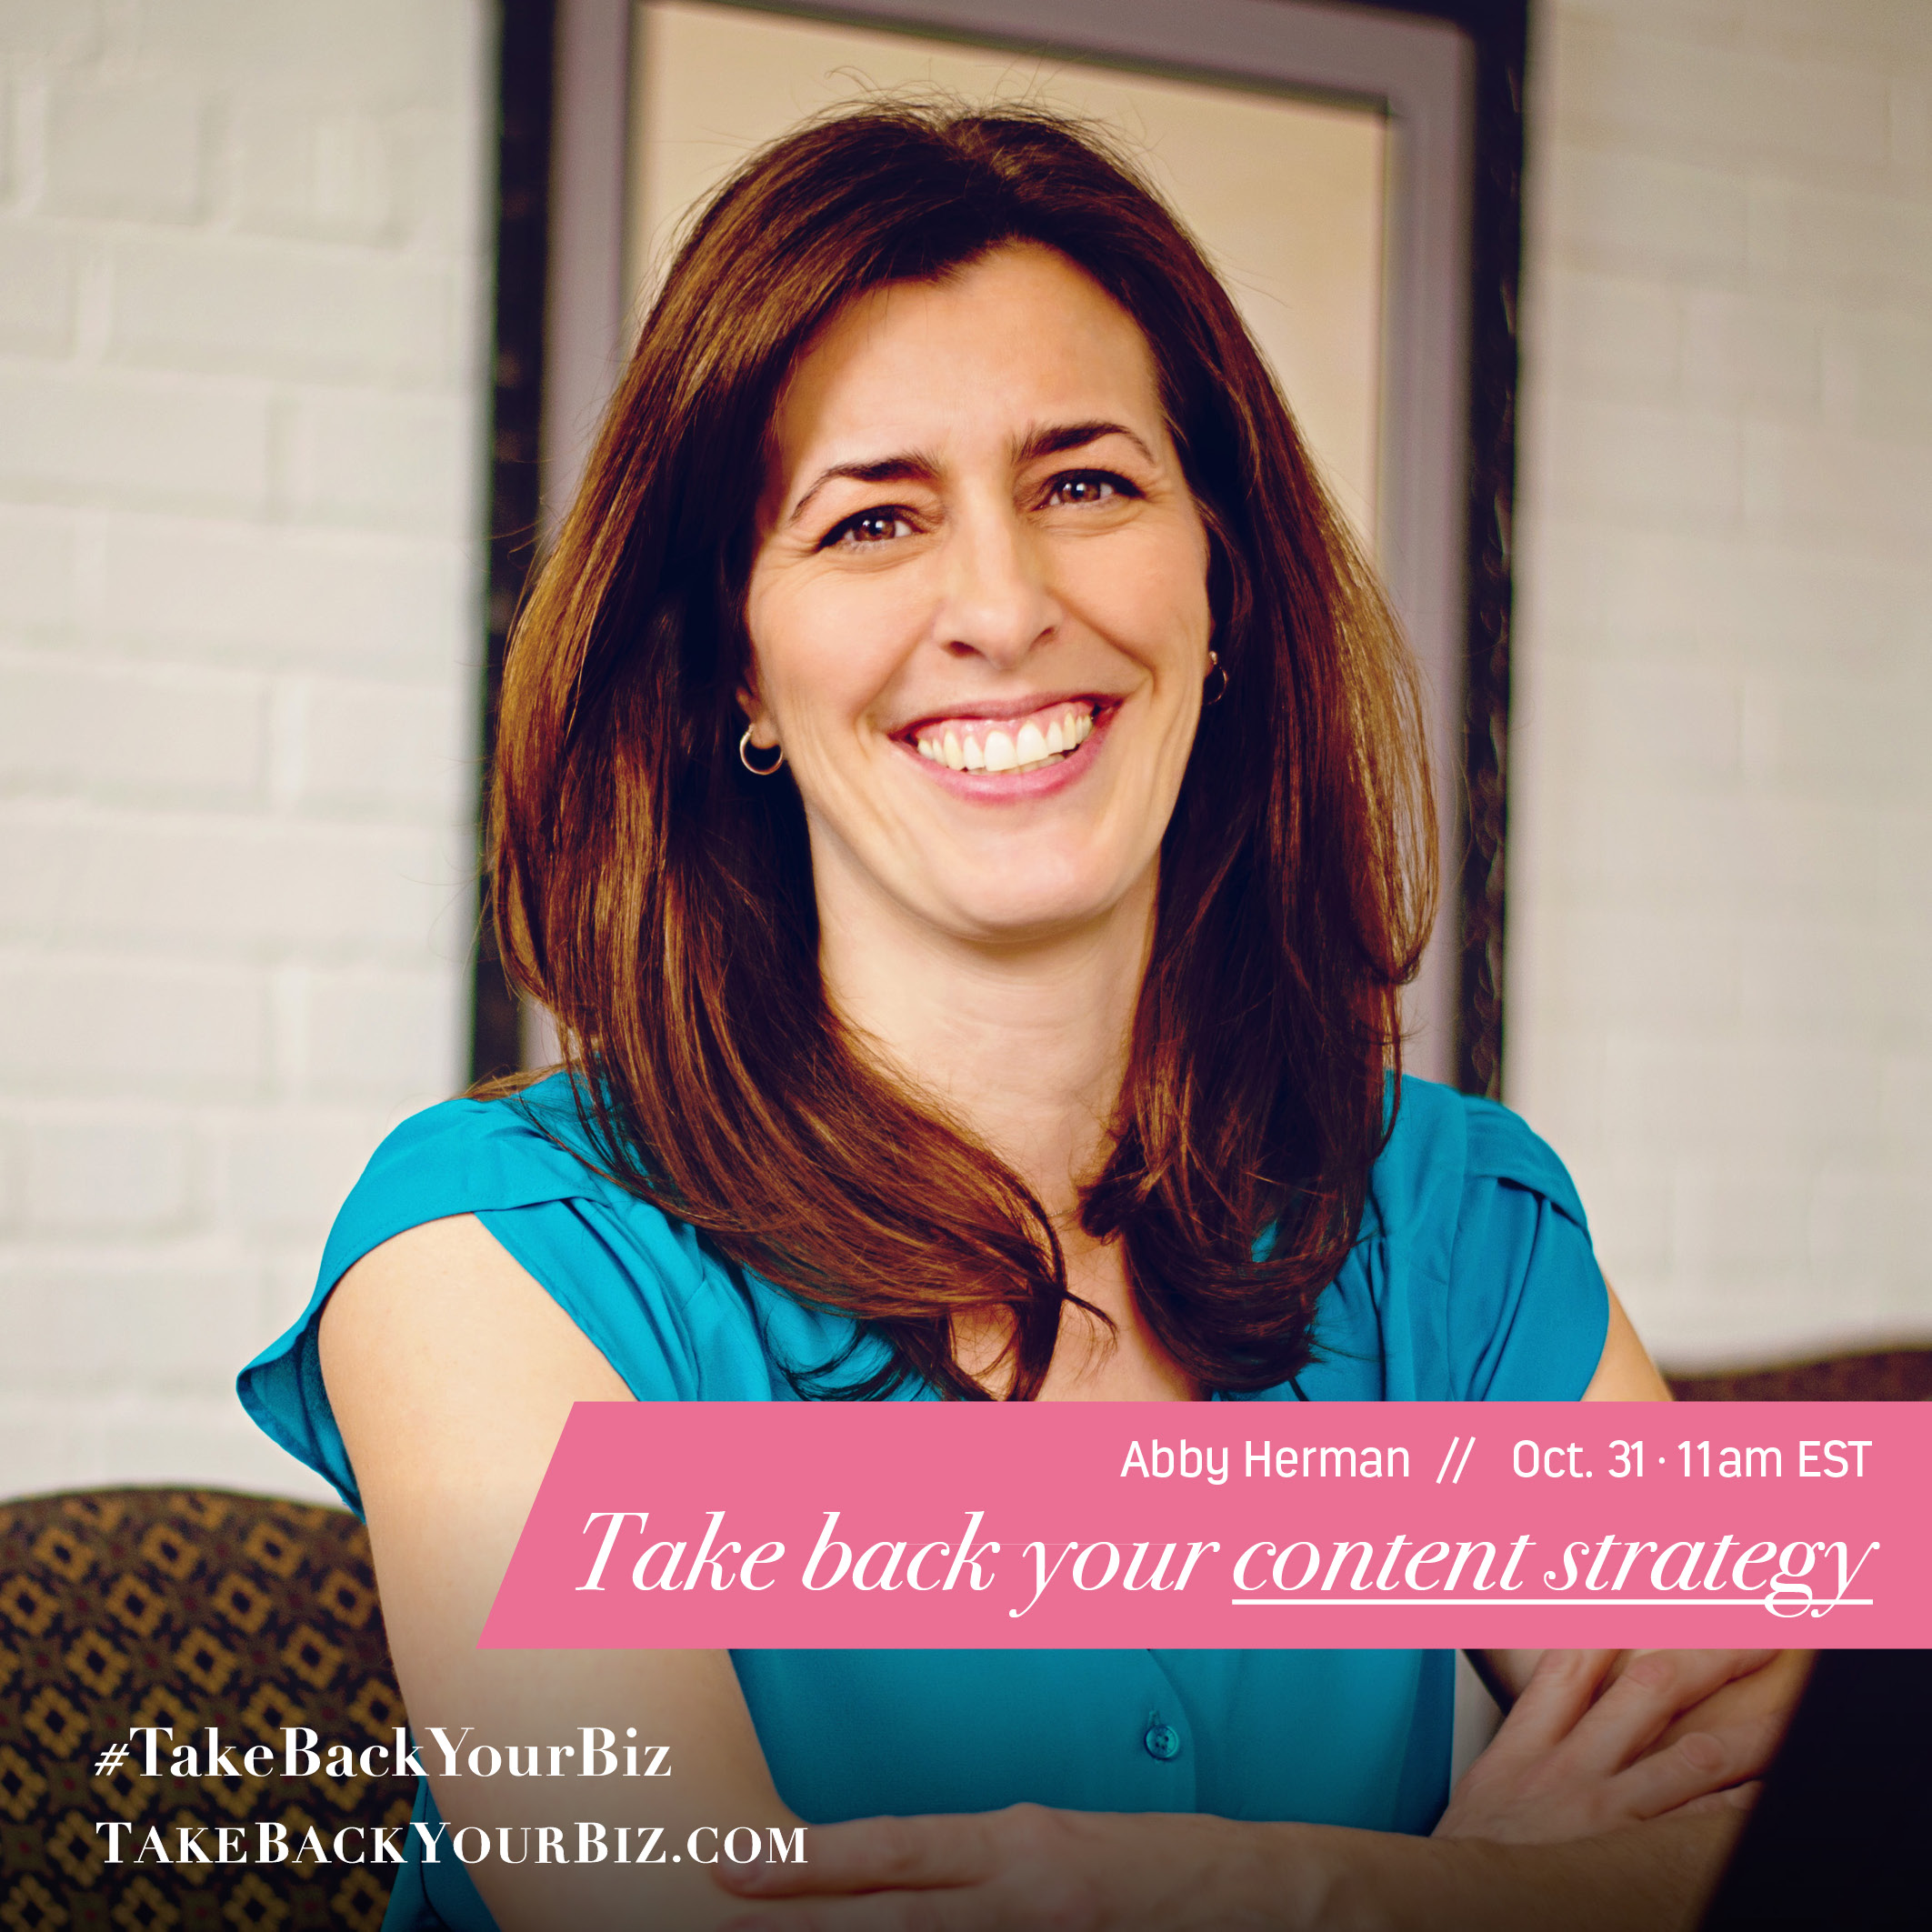 Take-Back-Your-Biz-Speakers-Abby-Herman-Write-Solutions